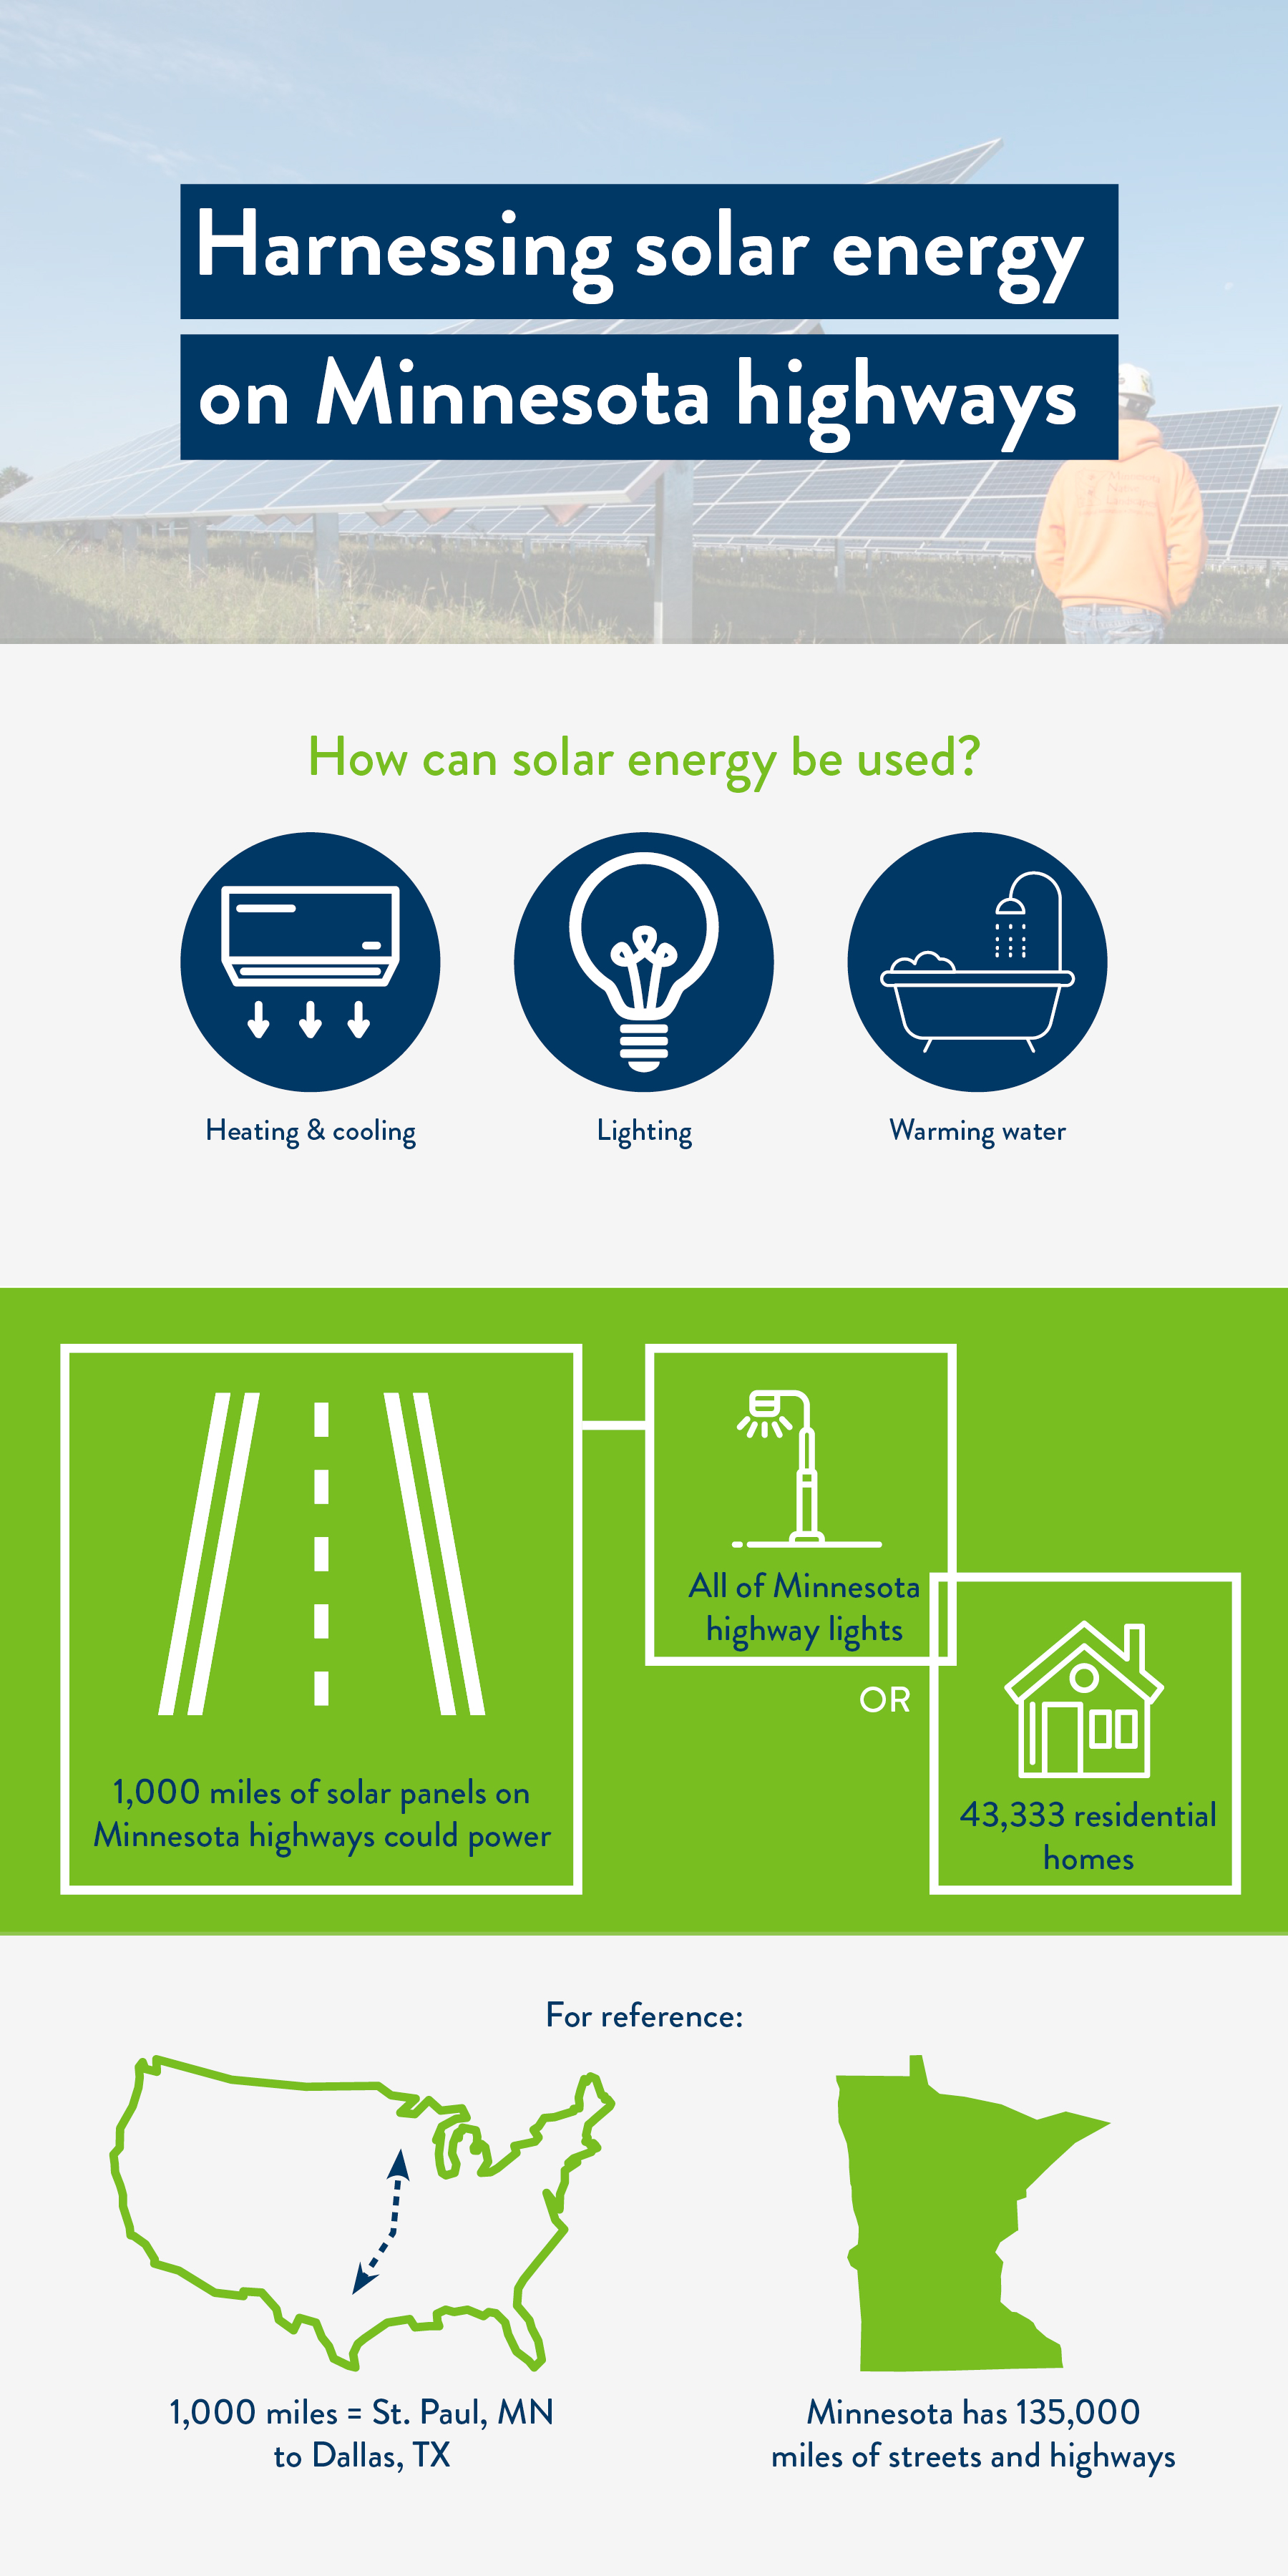 Infographic on solr energy. It states that 1,000 miles of solar panels on Minnesota highways could power all of the state's highway lights, or 43,333 residential homes.